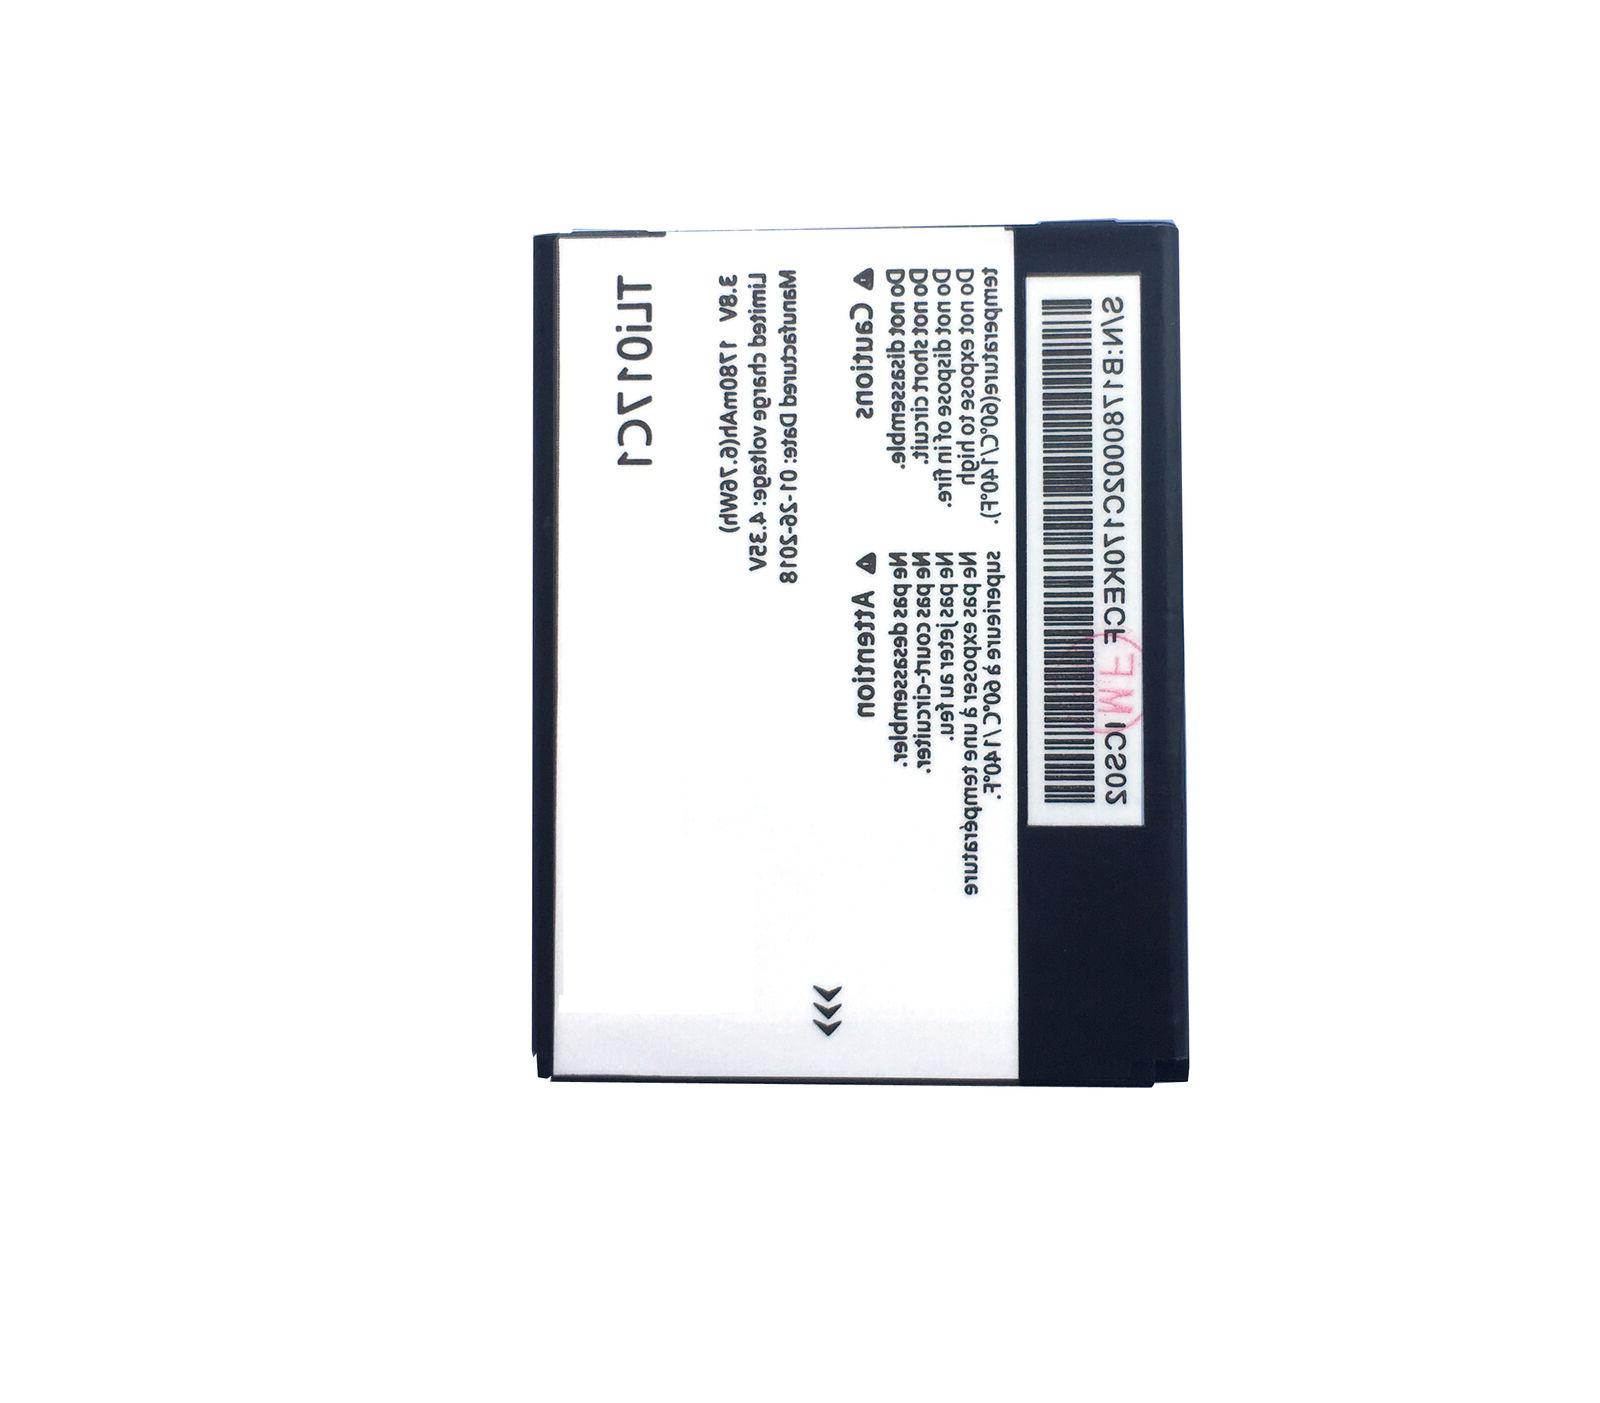 For Jitterbug Greatcall Flip Battery TLi017C1